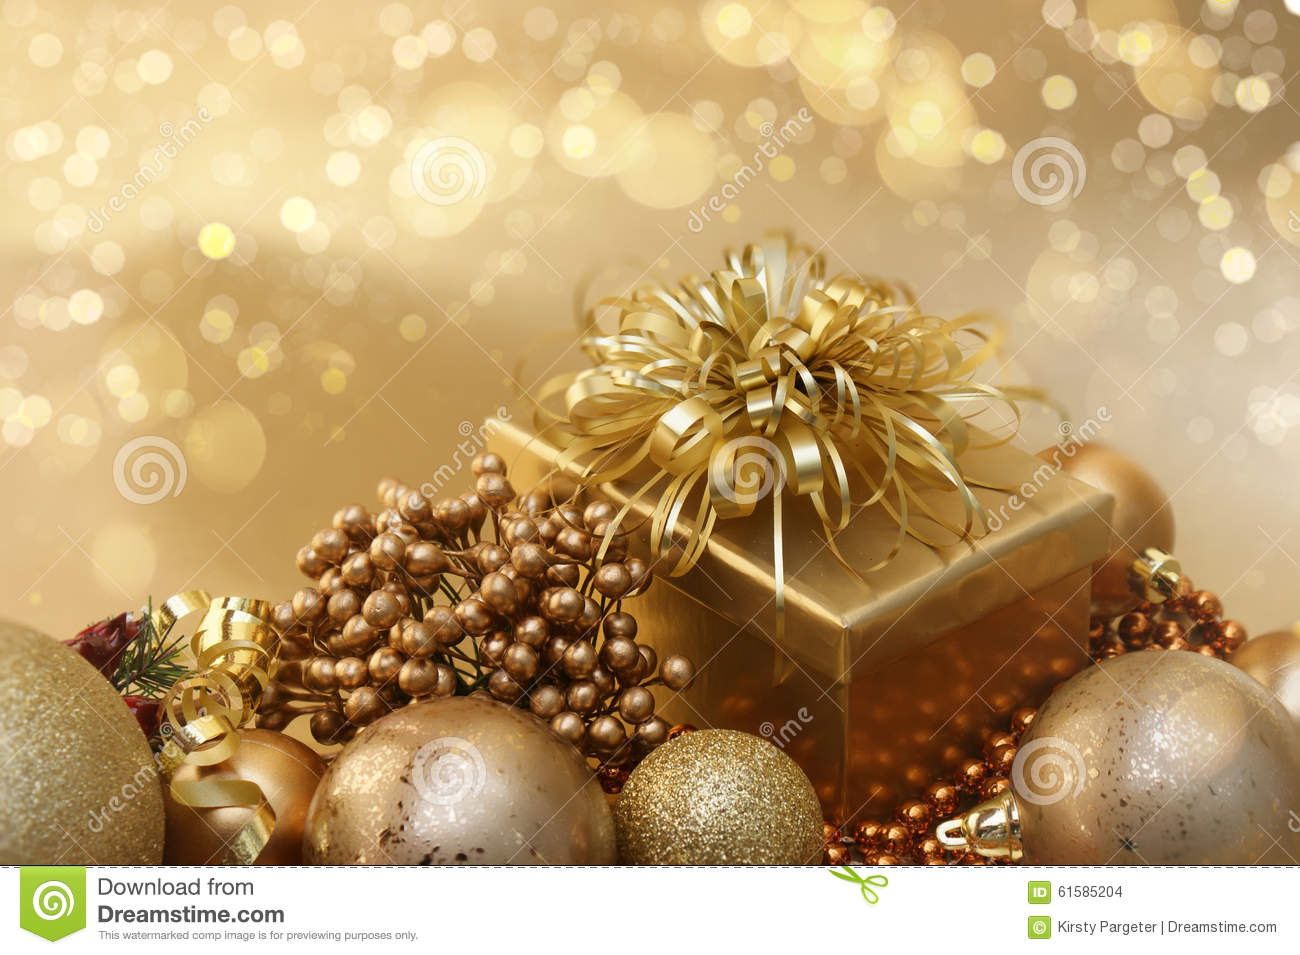 gold christmas decorations background - Gold Christmas Decorations